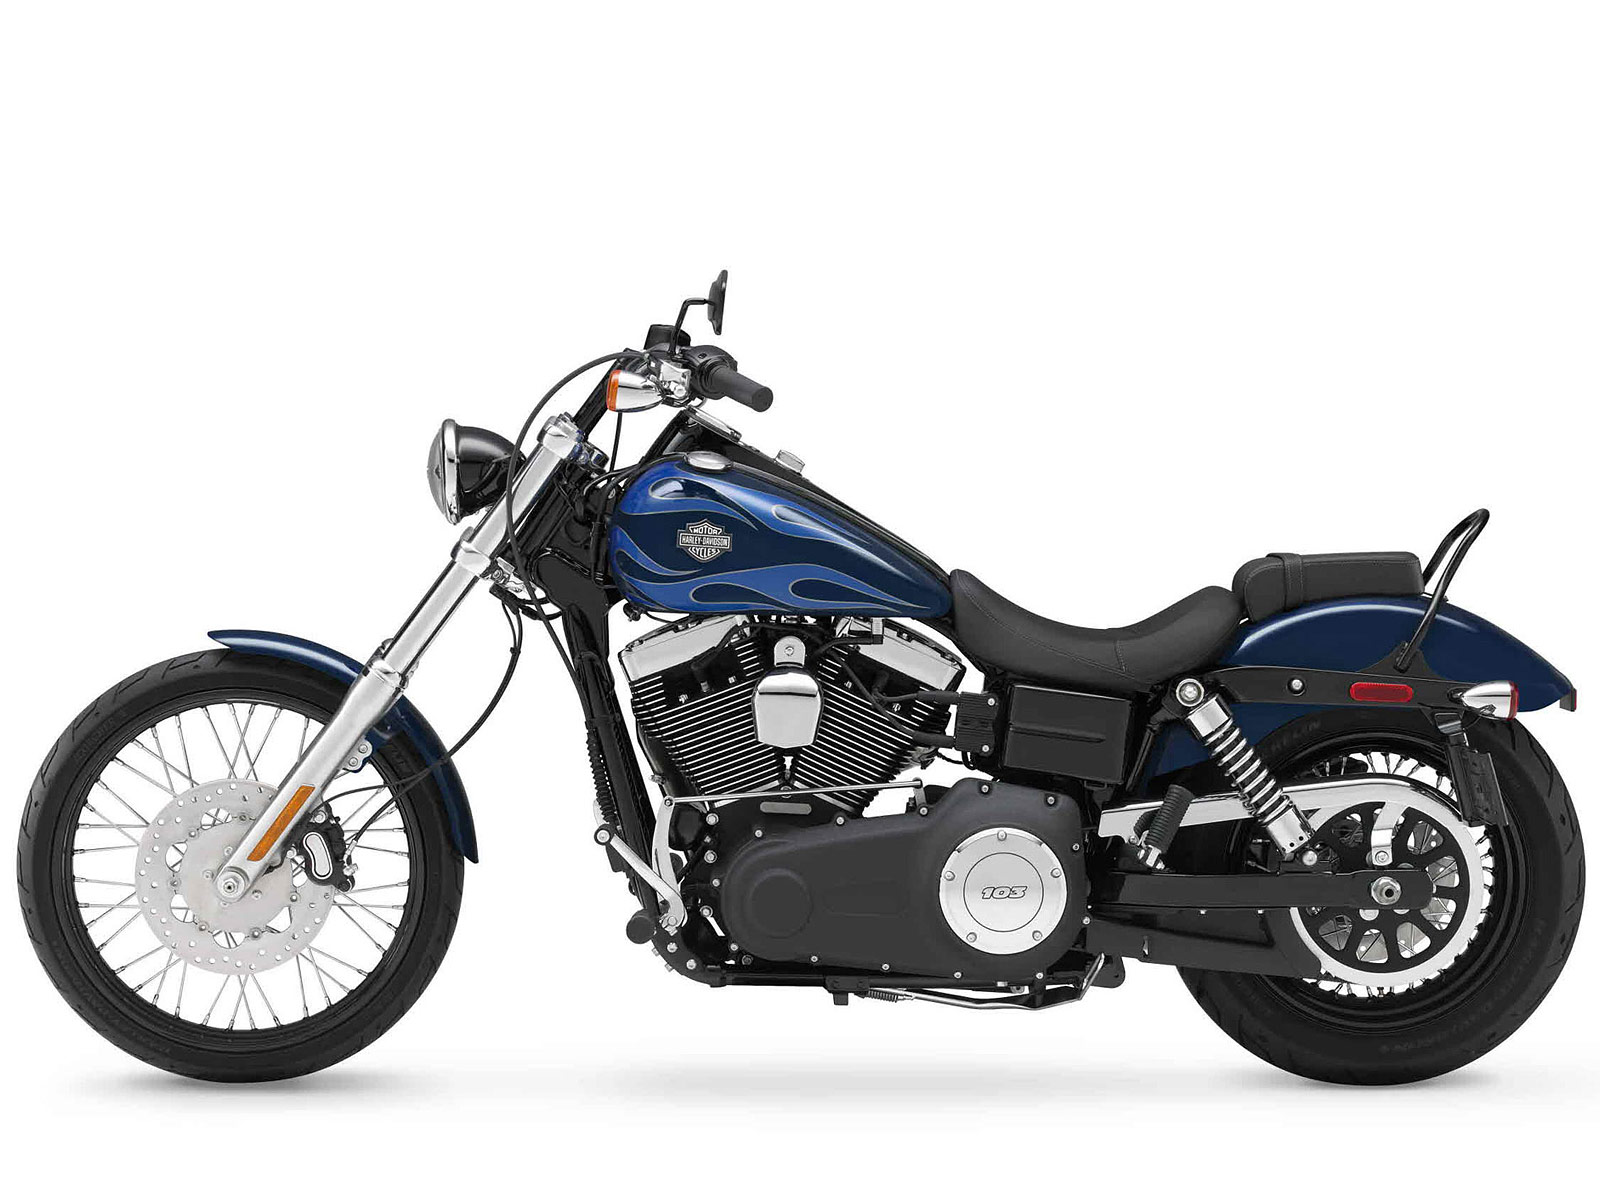 2012 harley davidson fxdwg dyna wide glide pictures. Black Bedroom Furniture Sets. Home Design Ideas